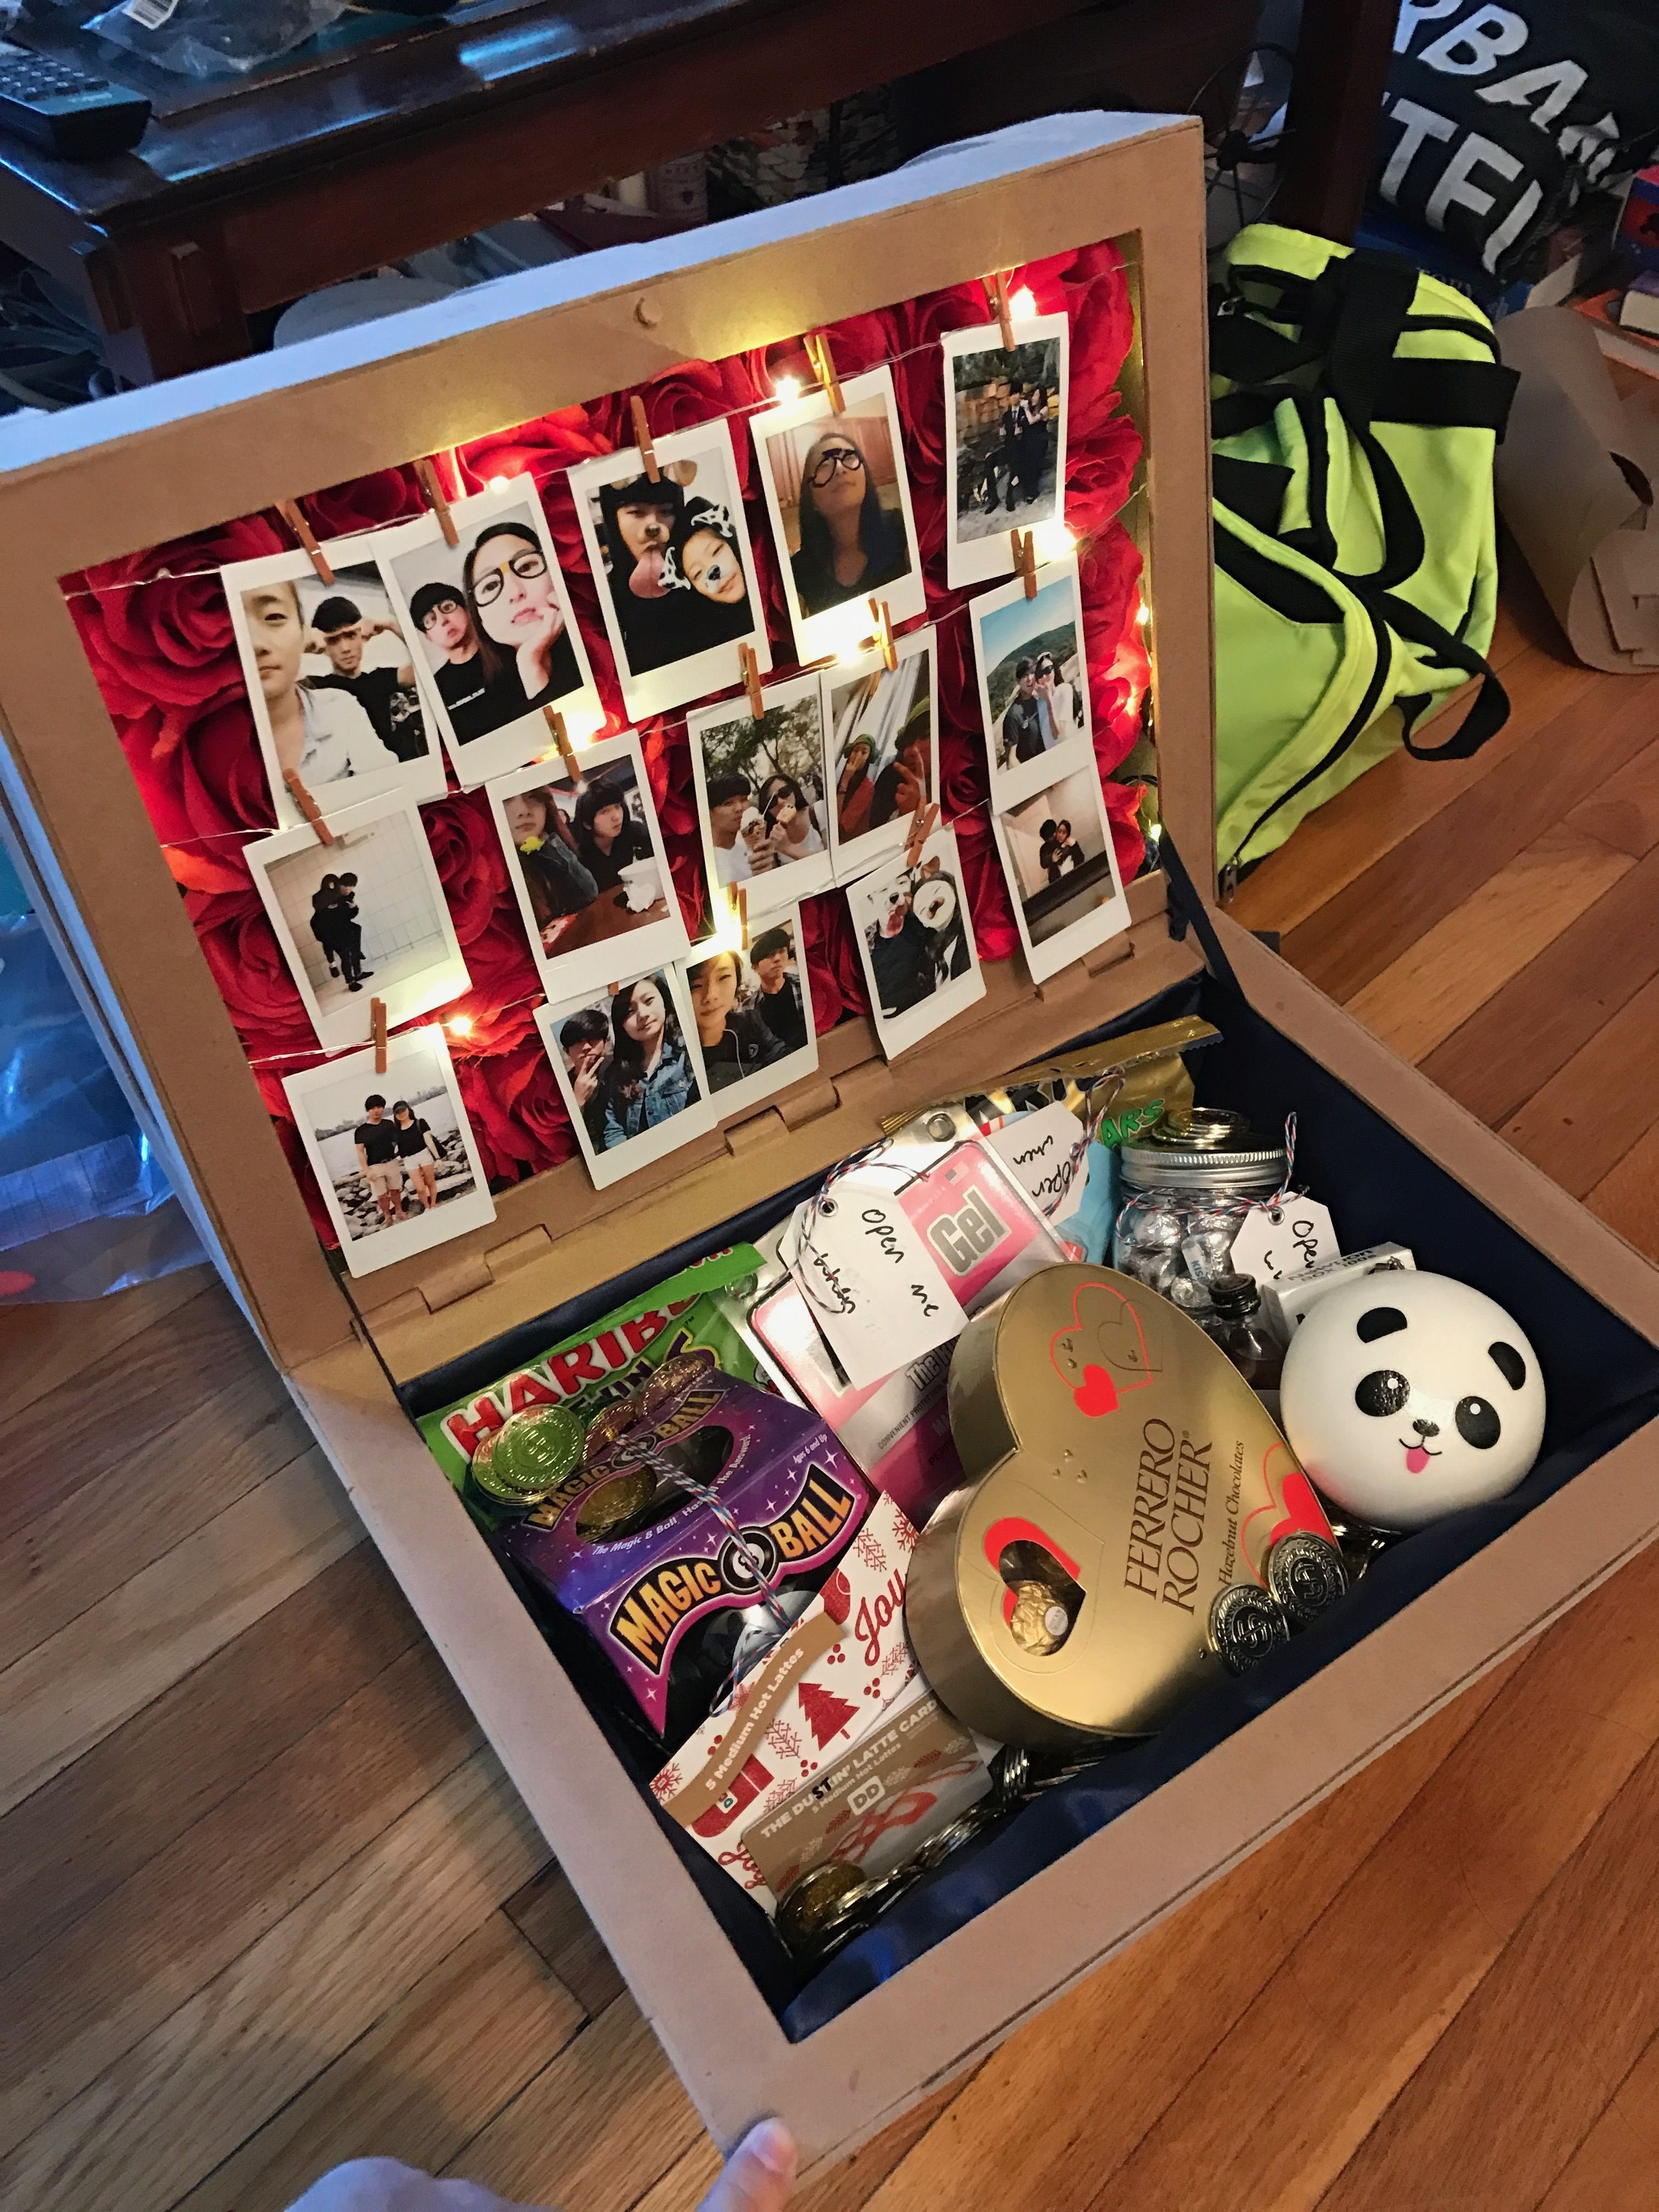 10 Awesome Fun Birthday Ideas For Girlfriend i made a treasure chest out of paper for my girlfriend 5 2020